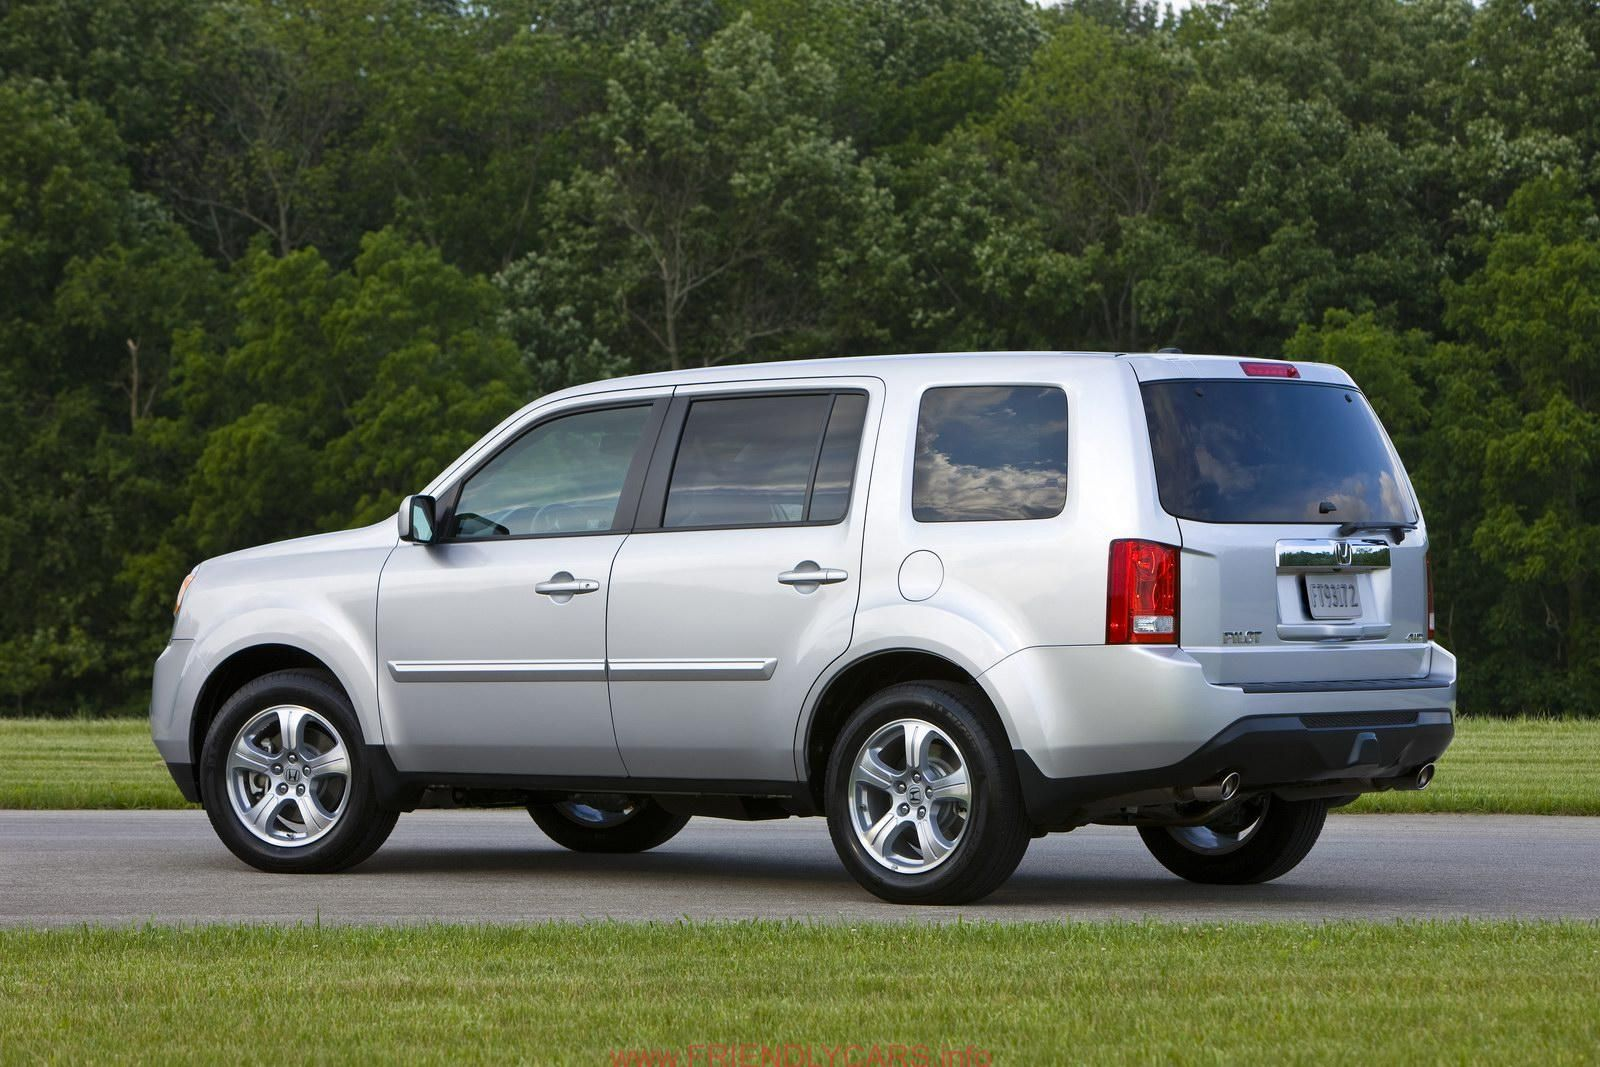 Cool honda pilot 2014 exterior colors car images hd refreshed 2012 honda pilot revealed in detail